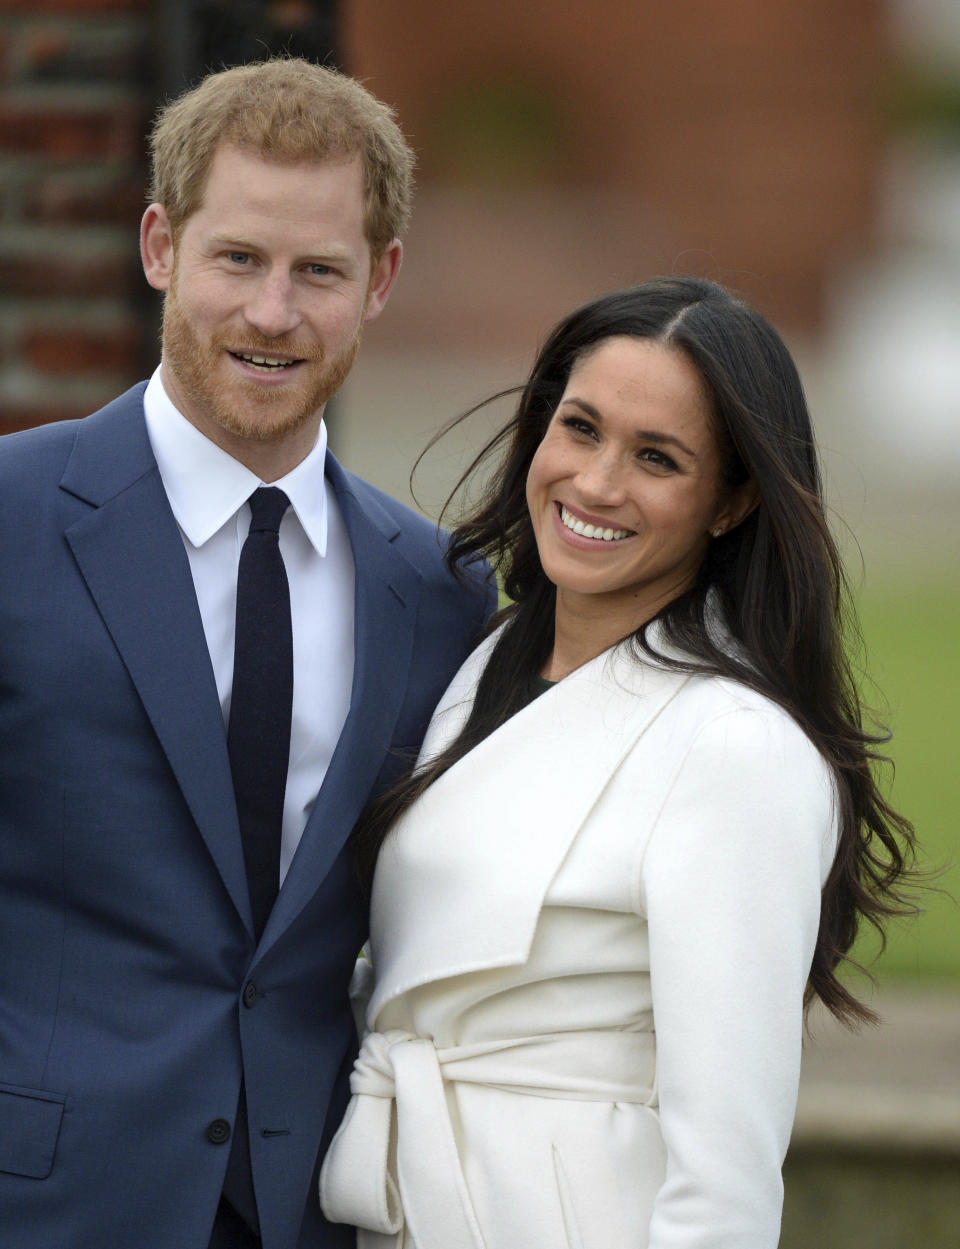 His Royal Highness Prince Harry Of Wales and Meghan Markle announce their engagement. (Photo: Getty Images)